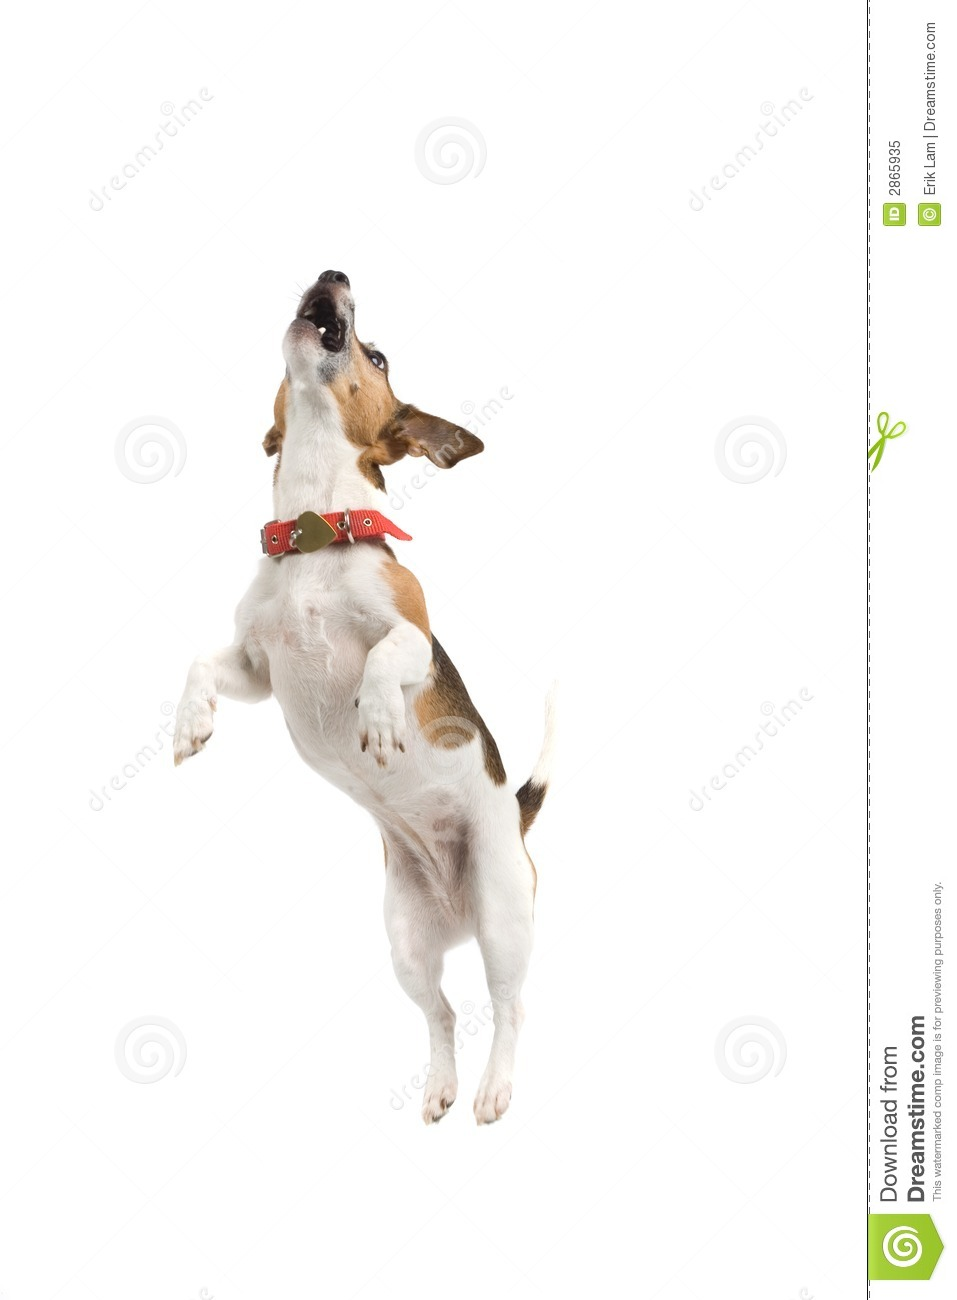 Jumping Dog Royalty Free Stock Photo - Image: 2865935